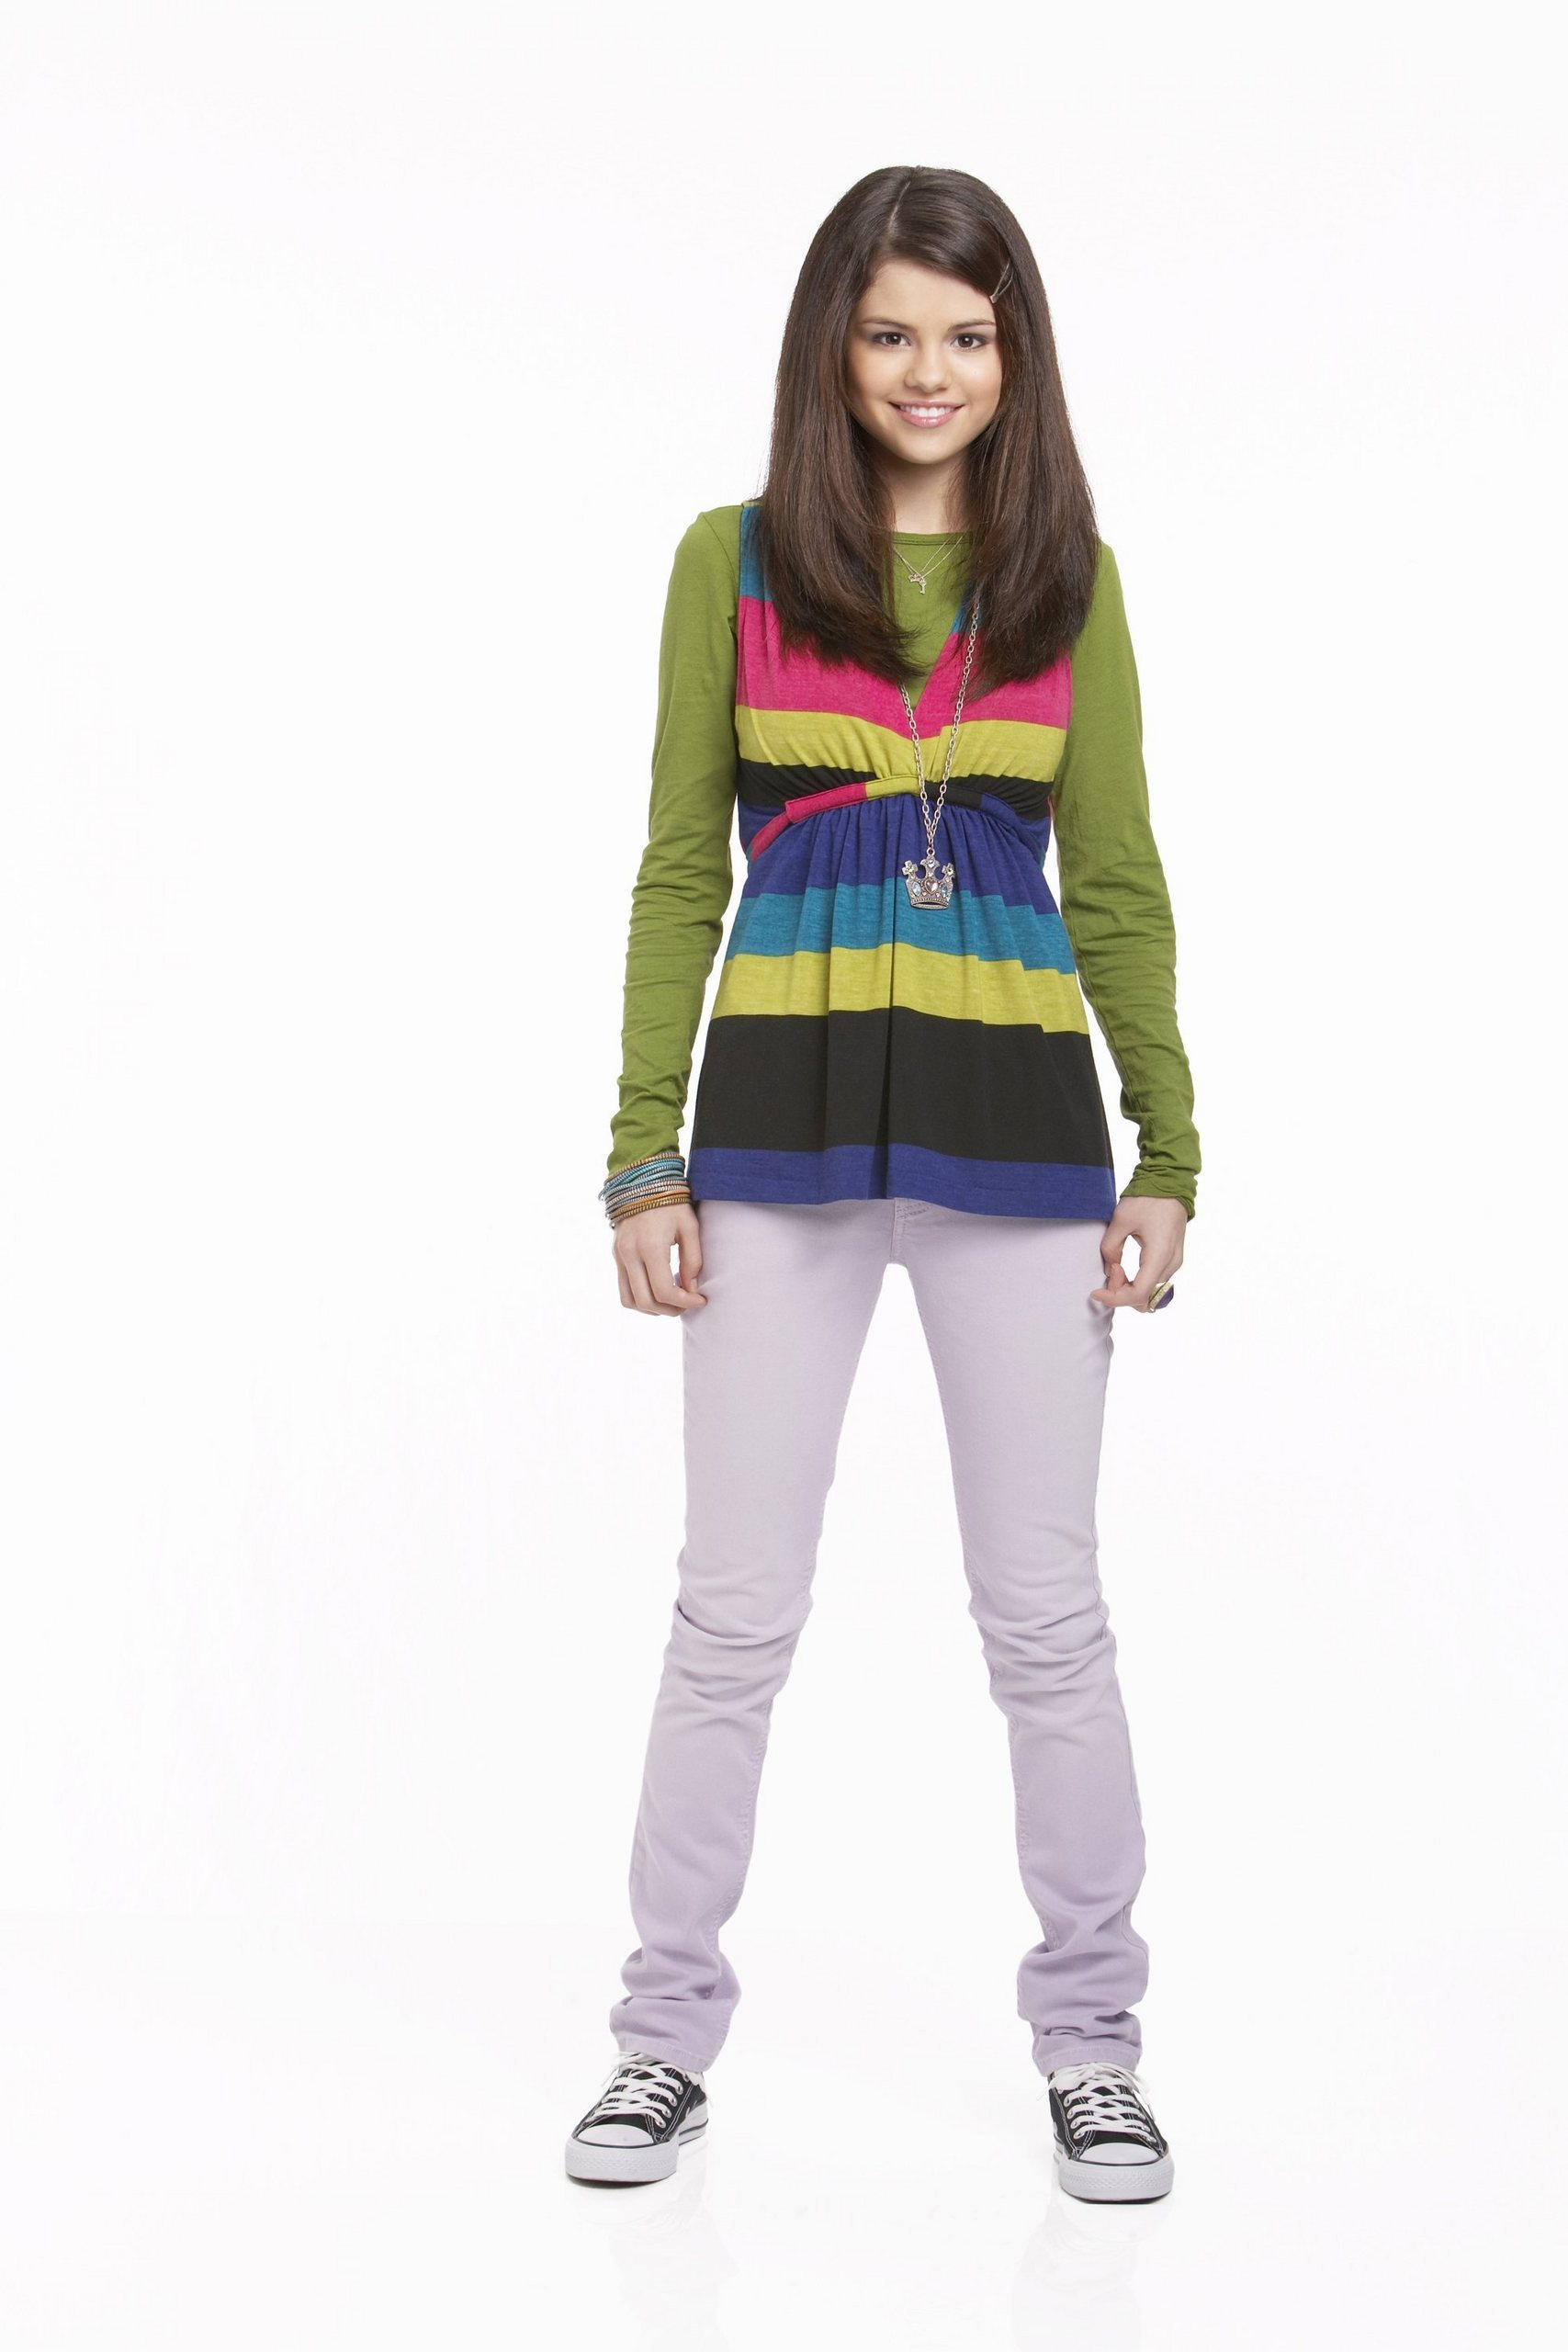 Wizards of waverly place images alex wallpaper photos for The waverly